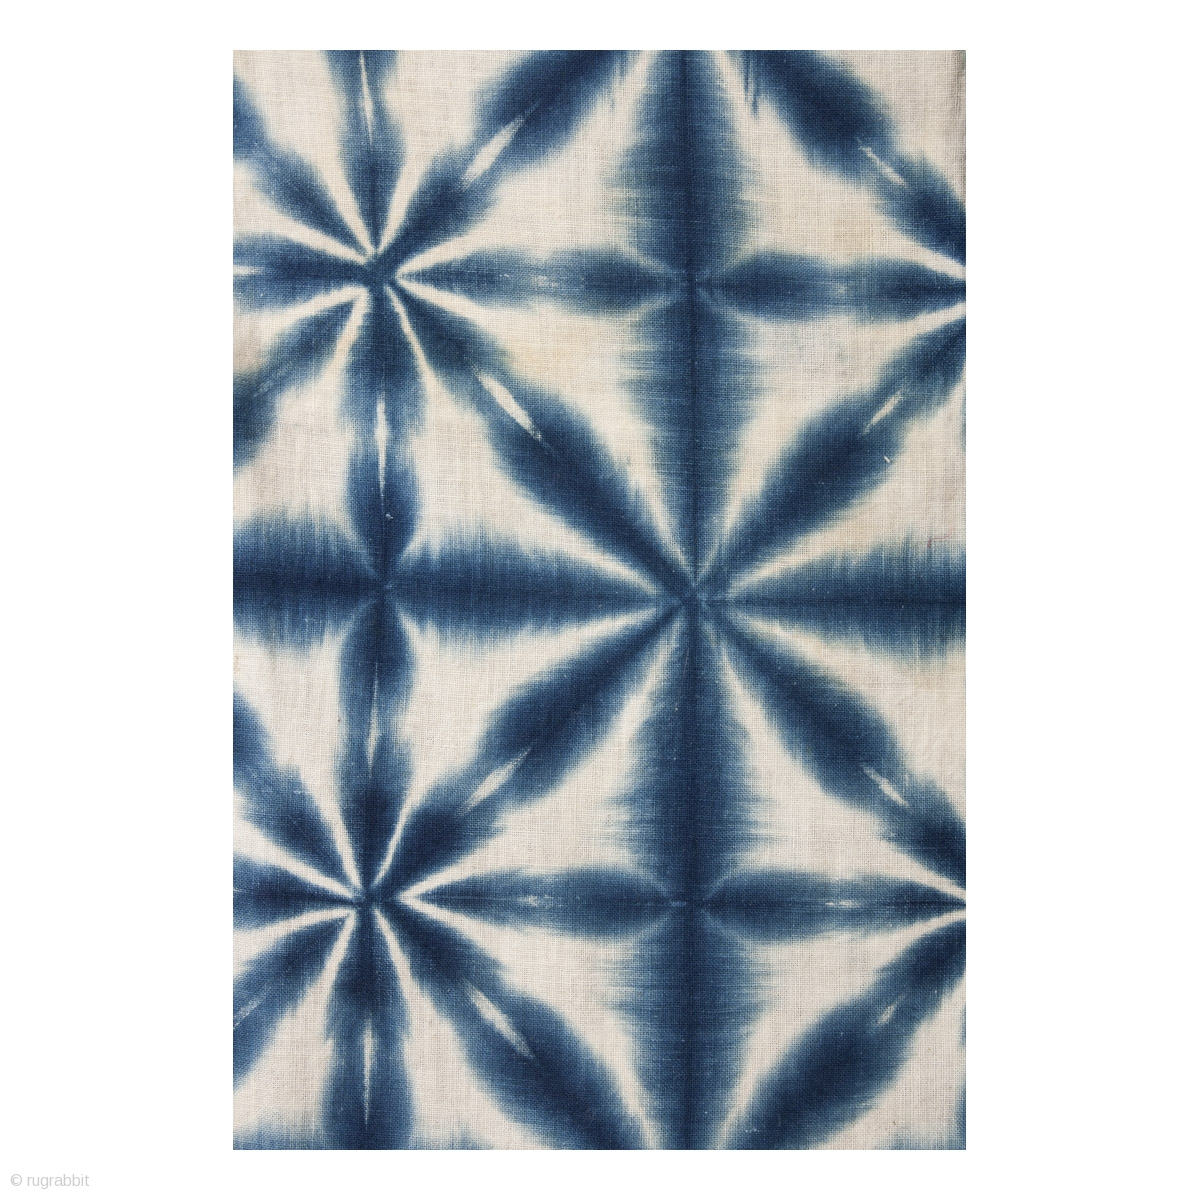 This Is A Striking Shibori Dyed Han Juban Which Is Often